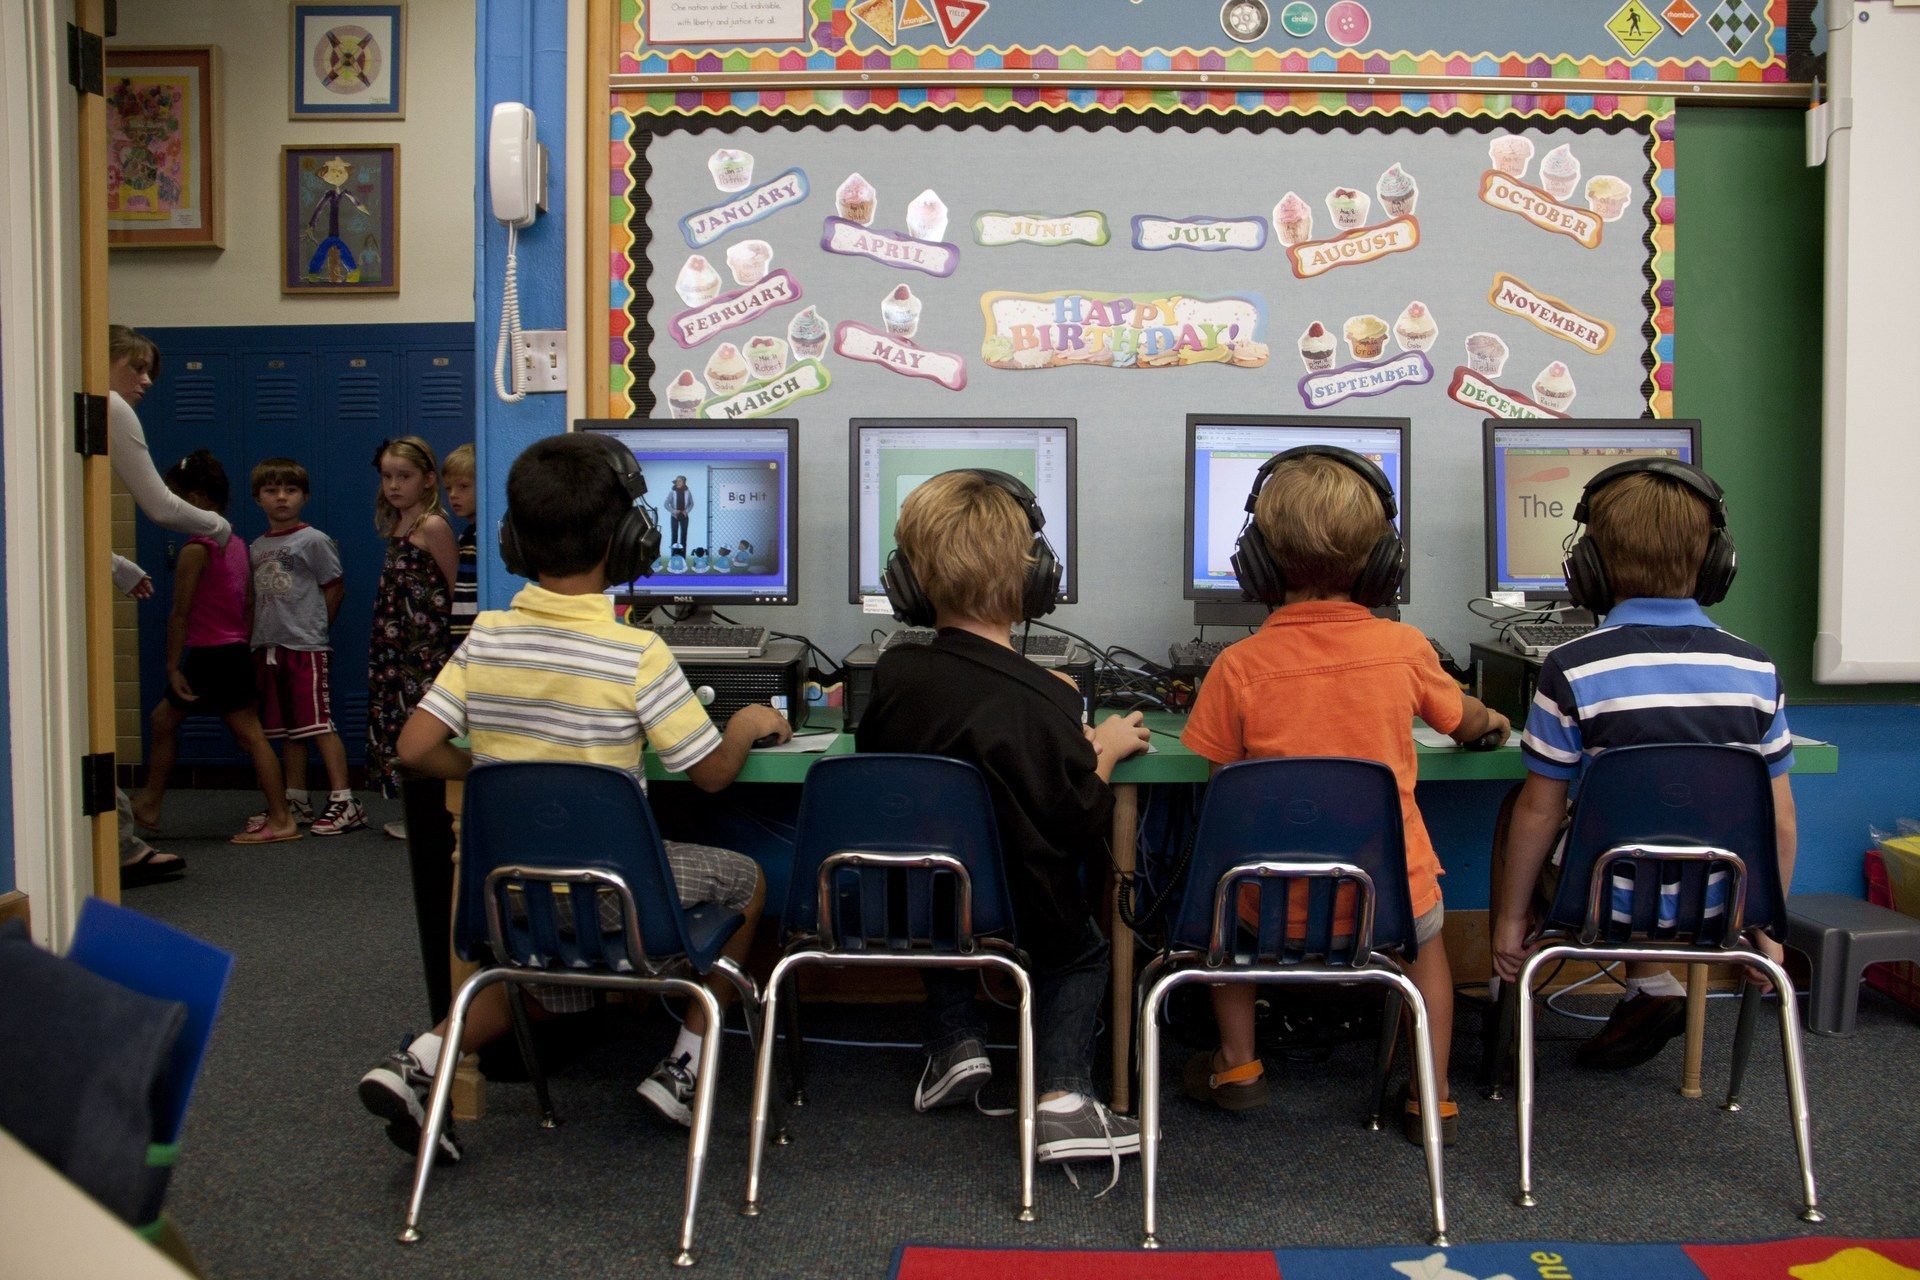 Four students enjoy using the classroom computers and headsets for learning activities